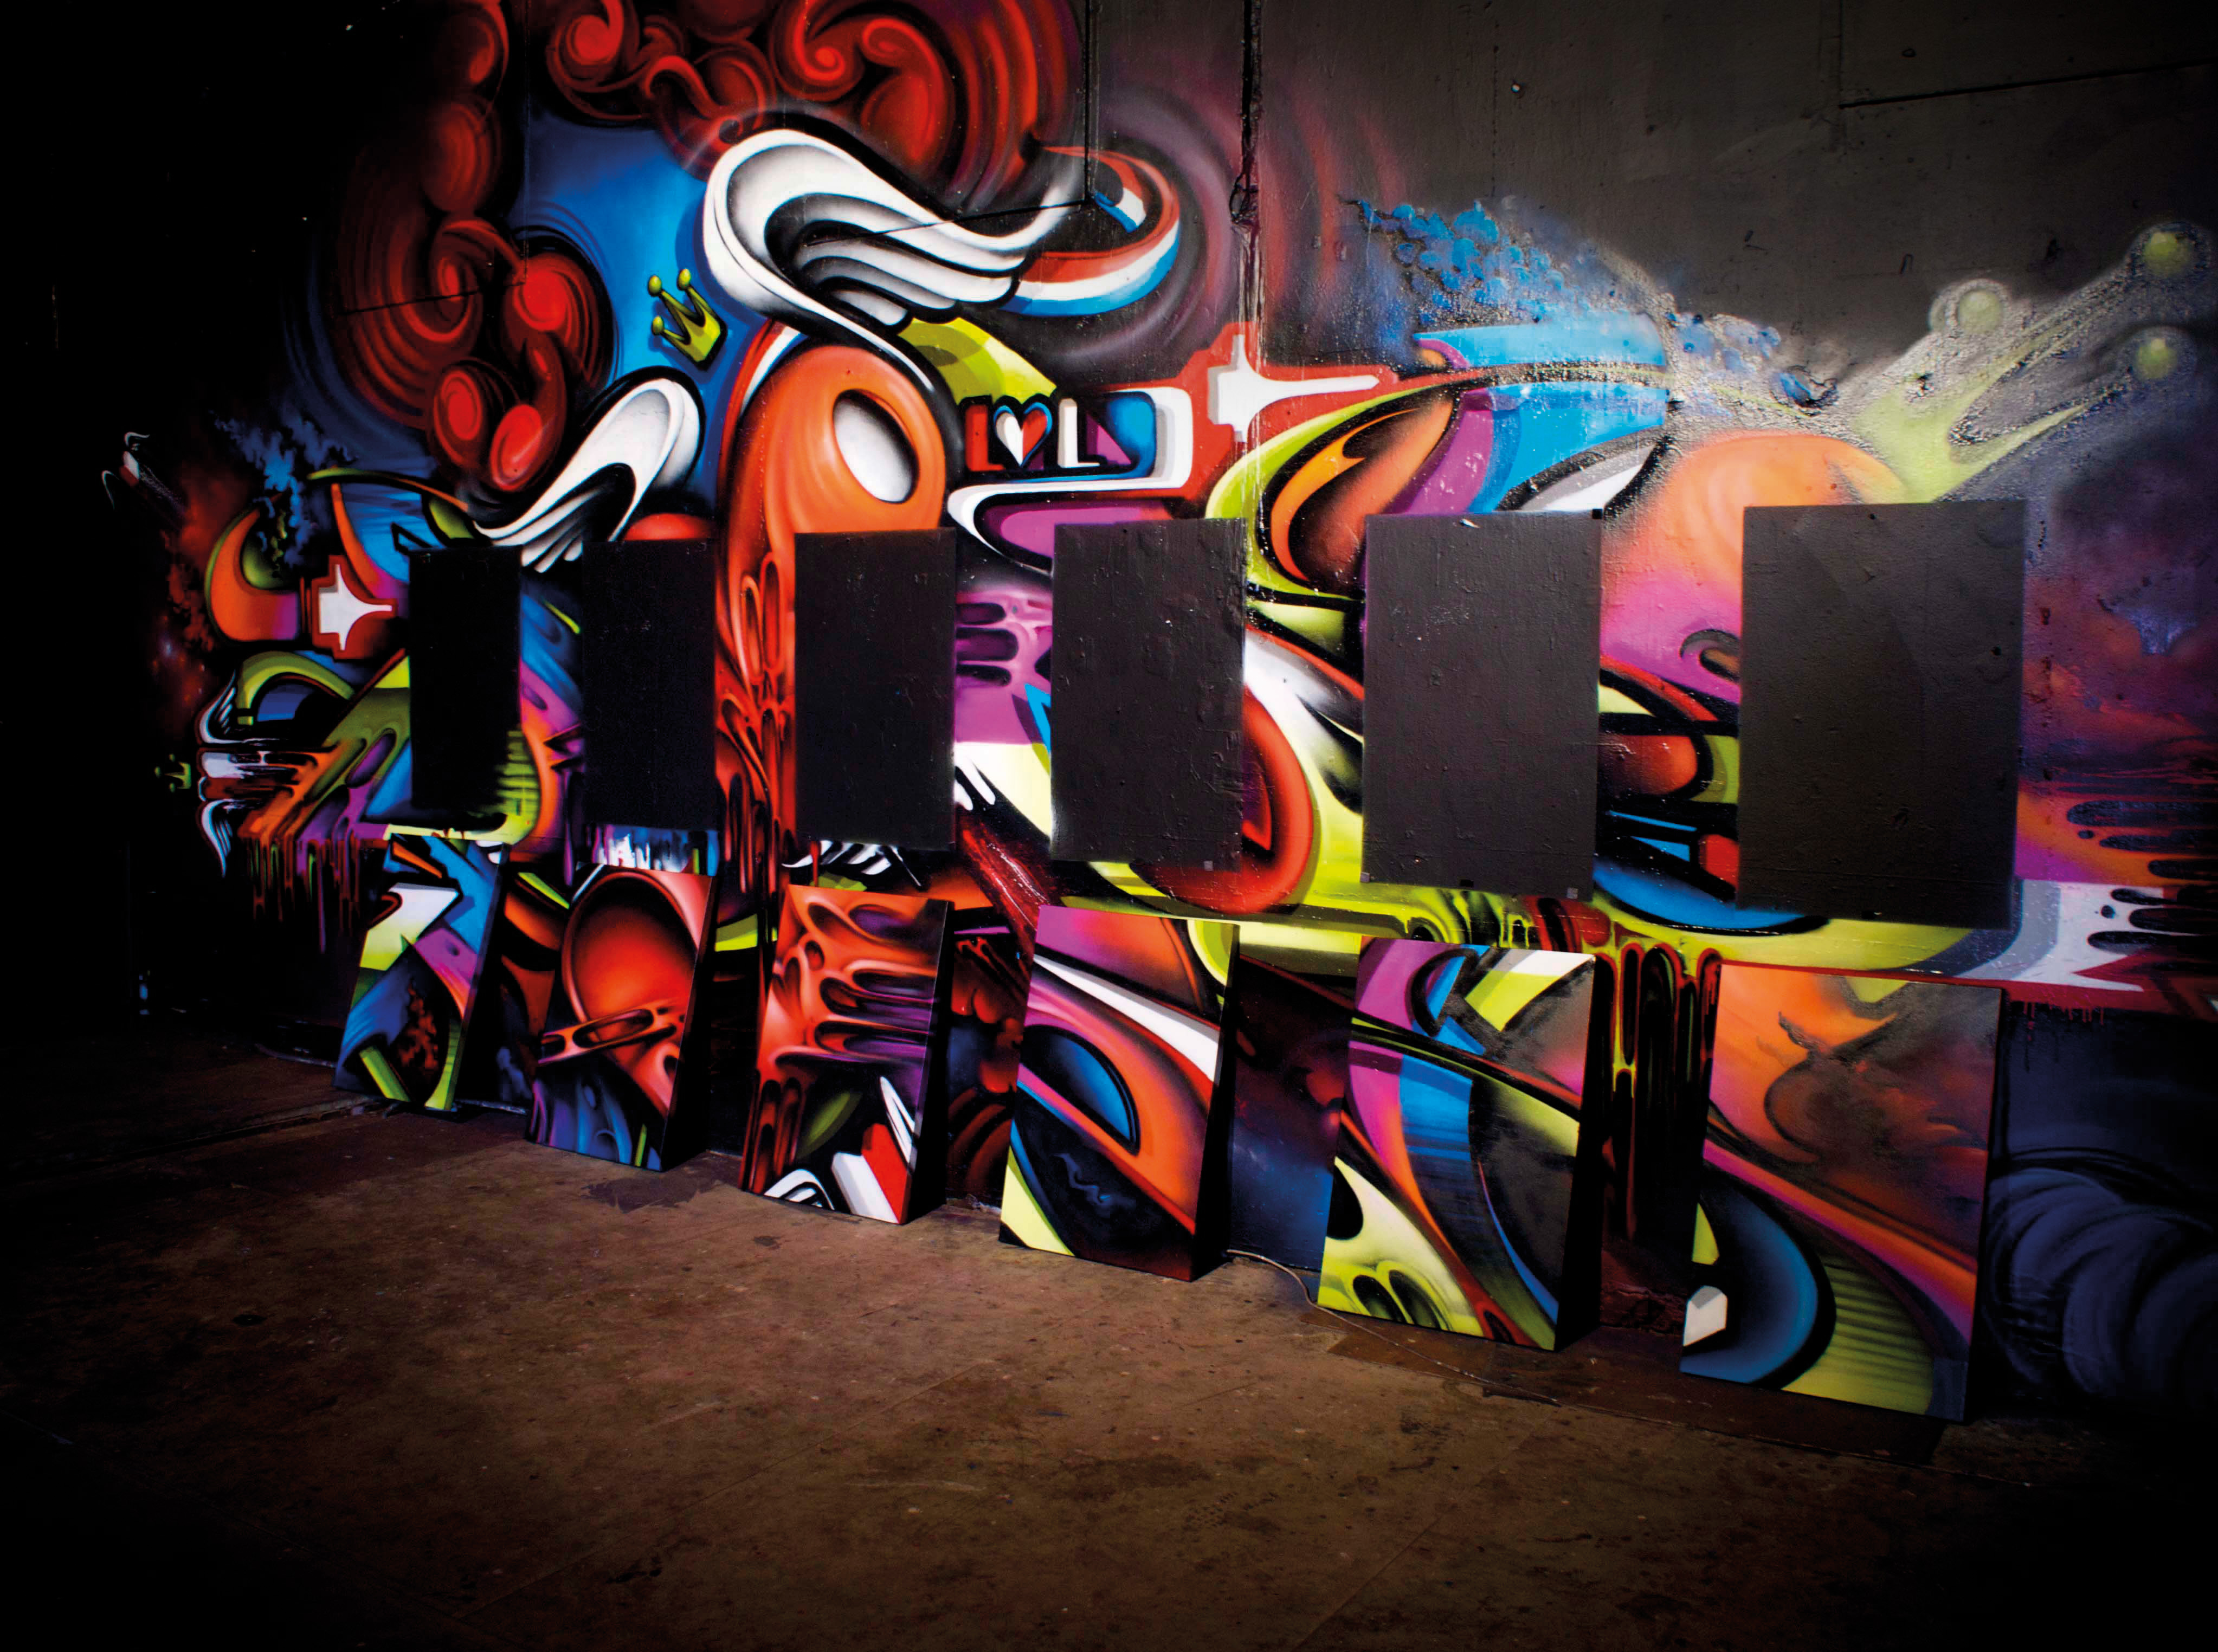 A work by Does - Sydney australia i love letters exhibition canvas mural